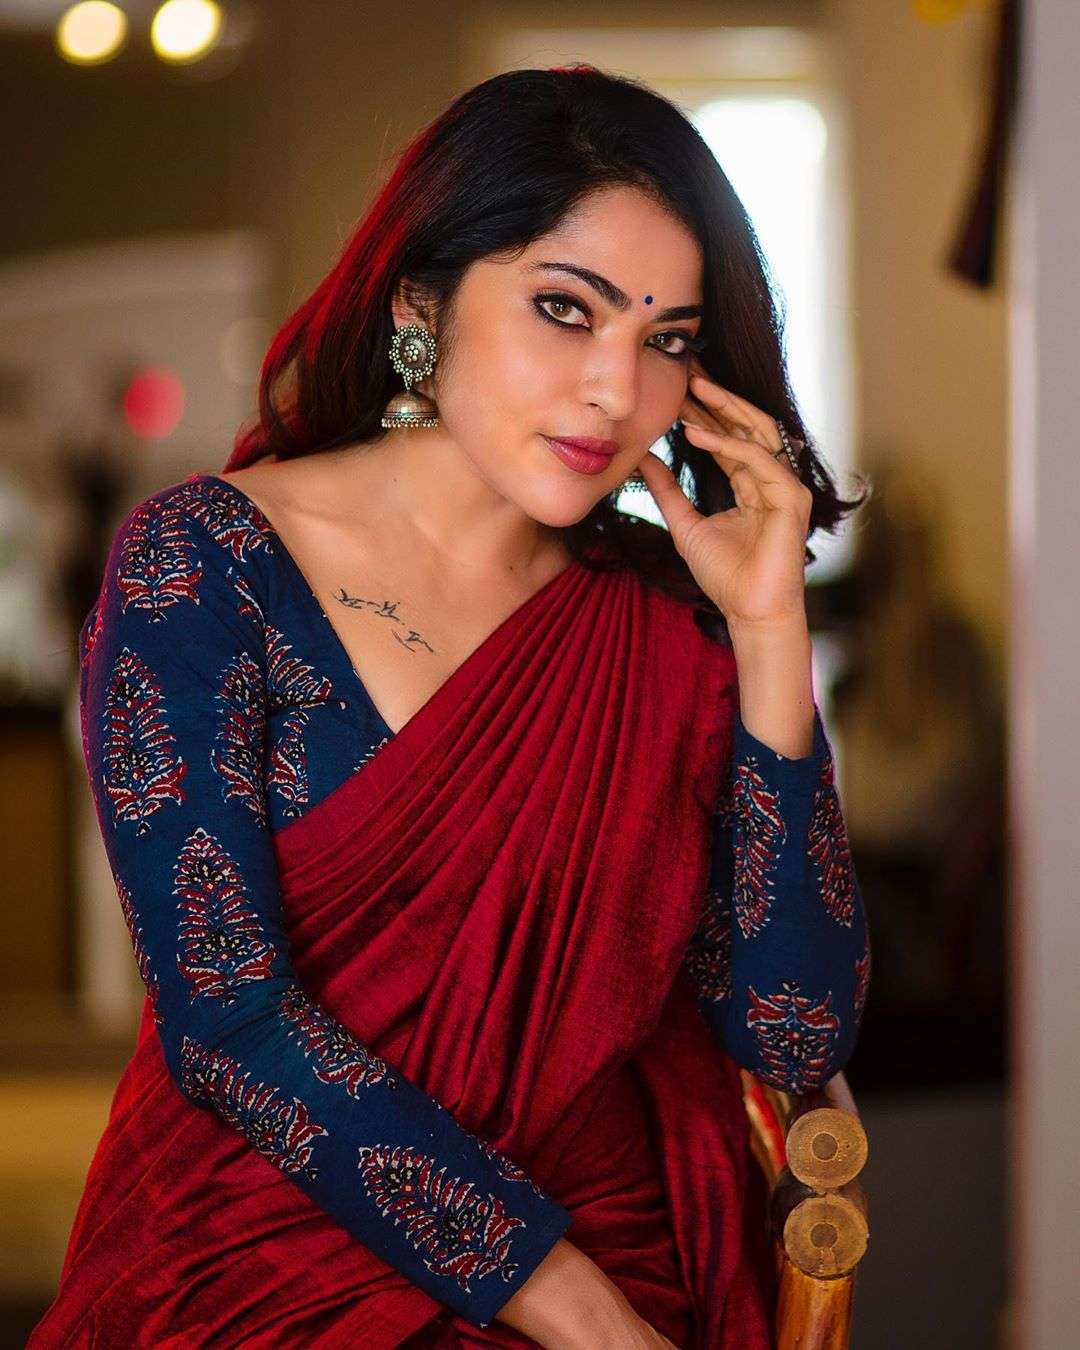 Vj Ramya Subramanian Latest Hot Saree Hd Photos Latest Indian Hollywood Movies Updates Branding Online And Actress Gallery